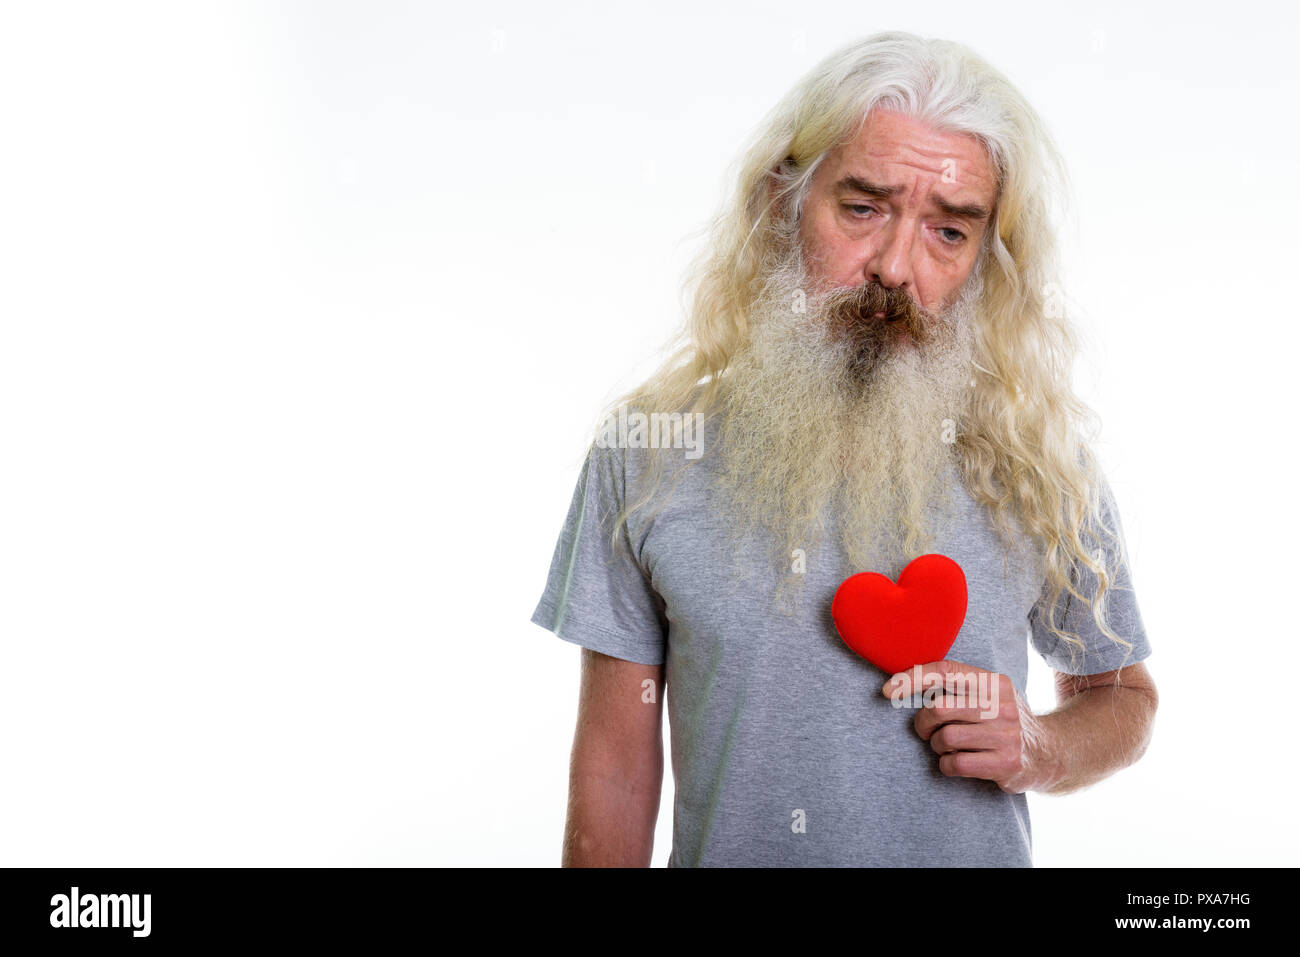 Studio shot of senior bearded man holding red heart while lookin - Stock Image